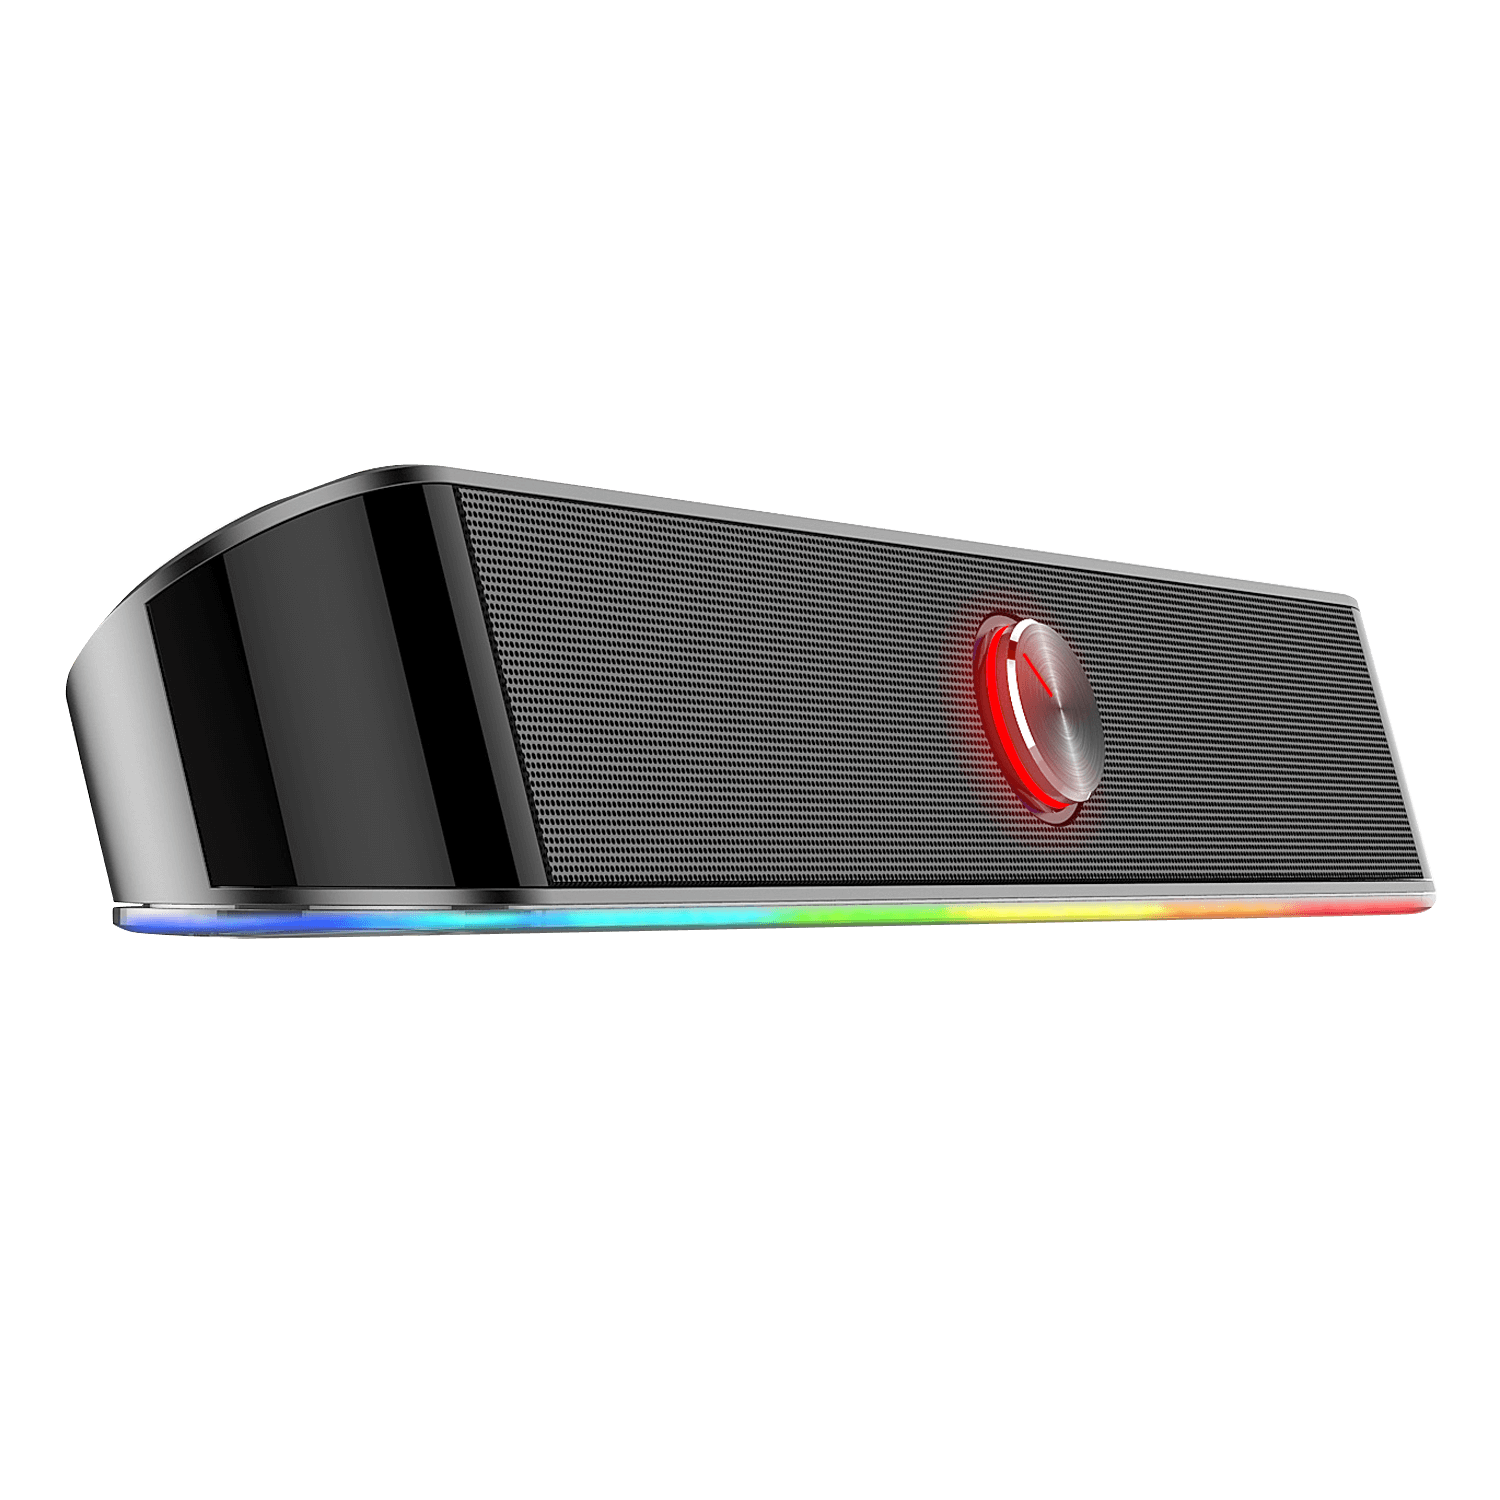 GS560 REDRAGON SOUNDBAR